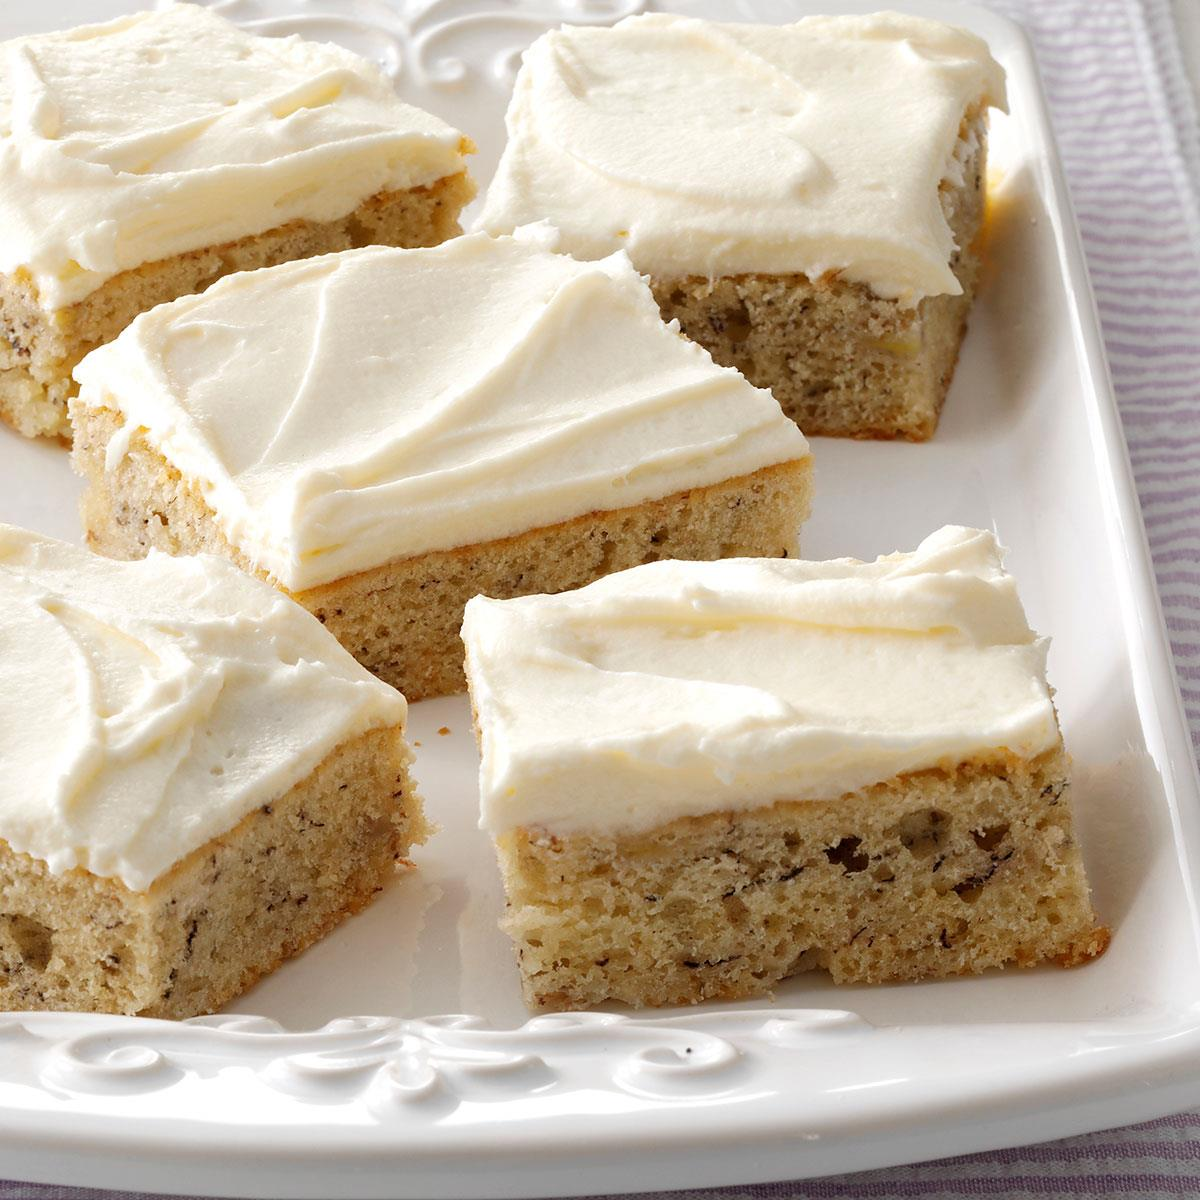 Where To Store Cake With Cream Cheese Frosting